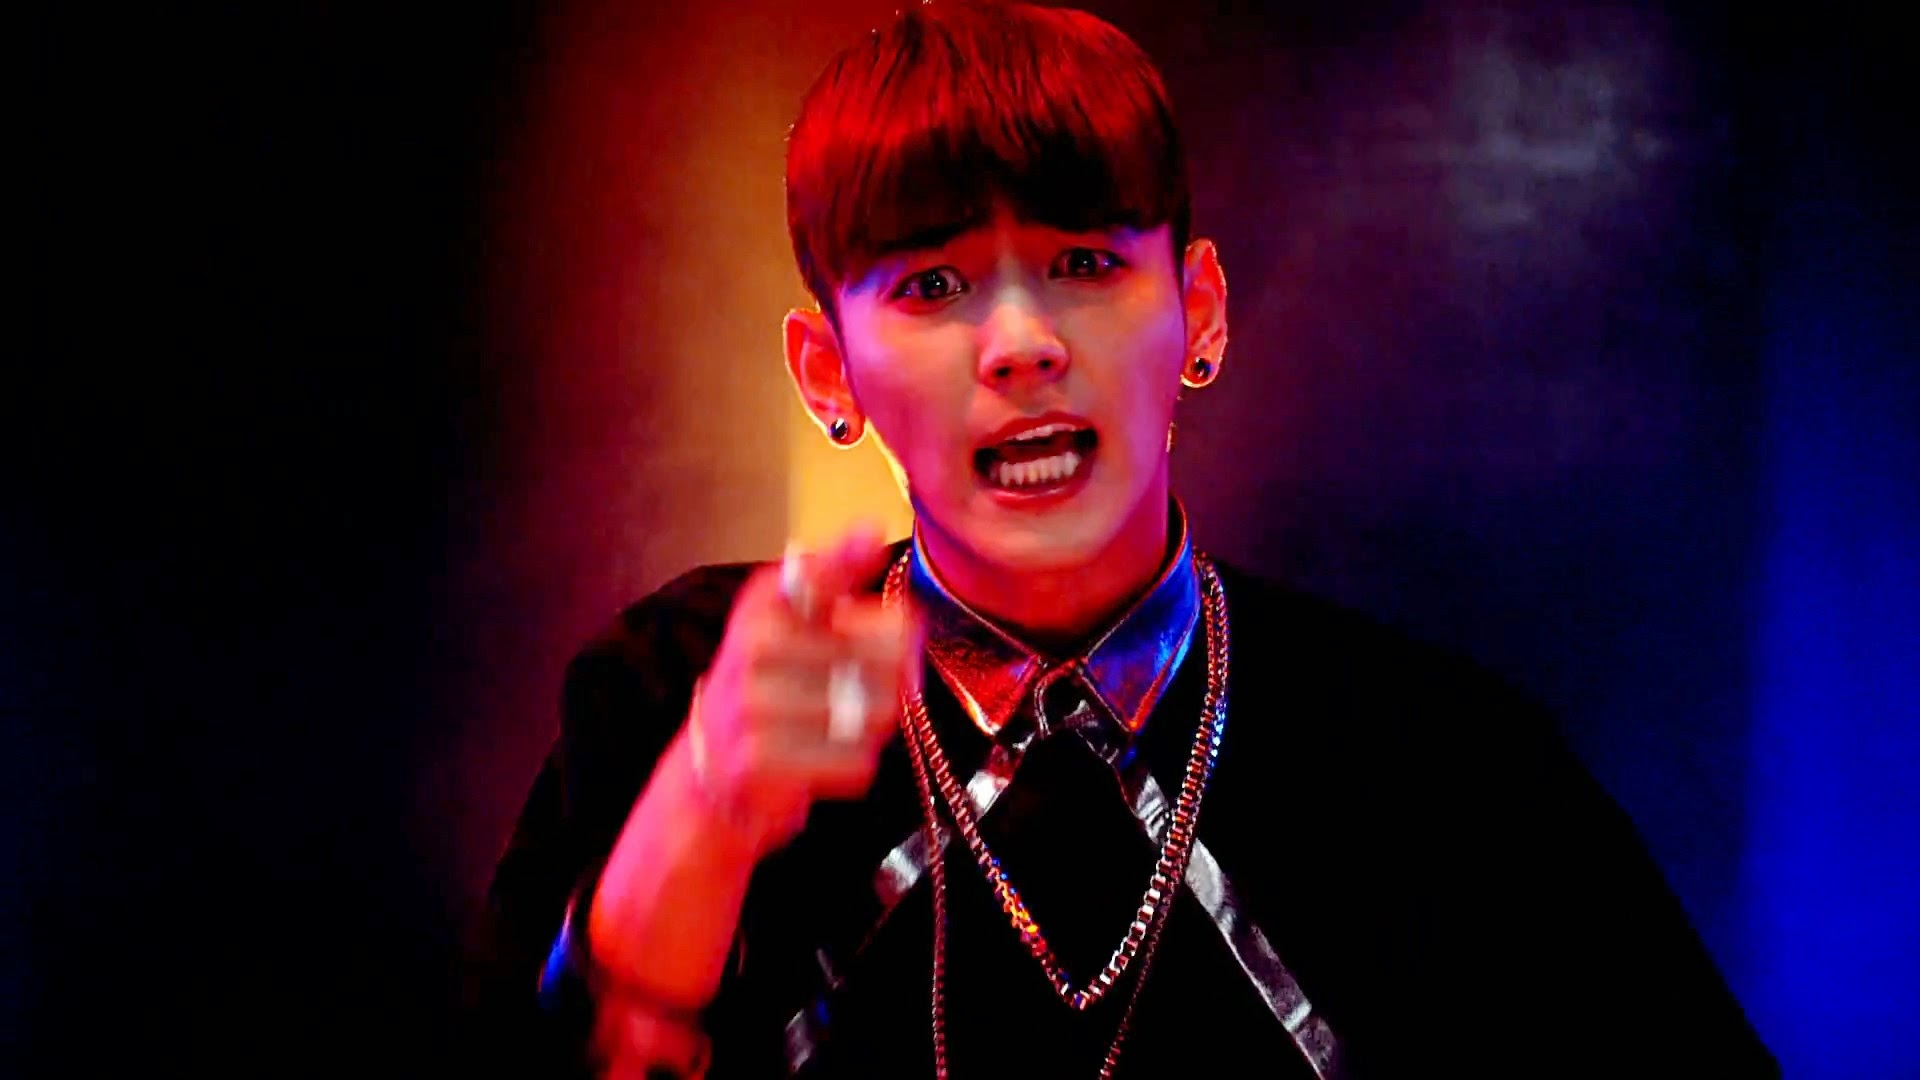 Myname's Seyong from Just Tell Me MV